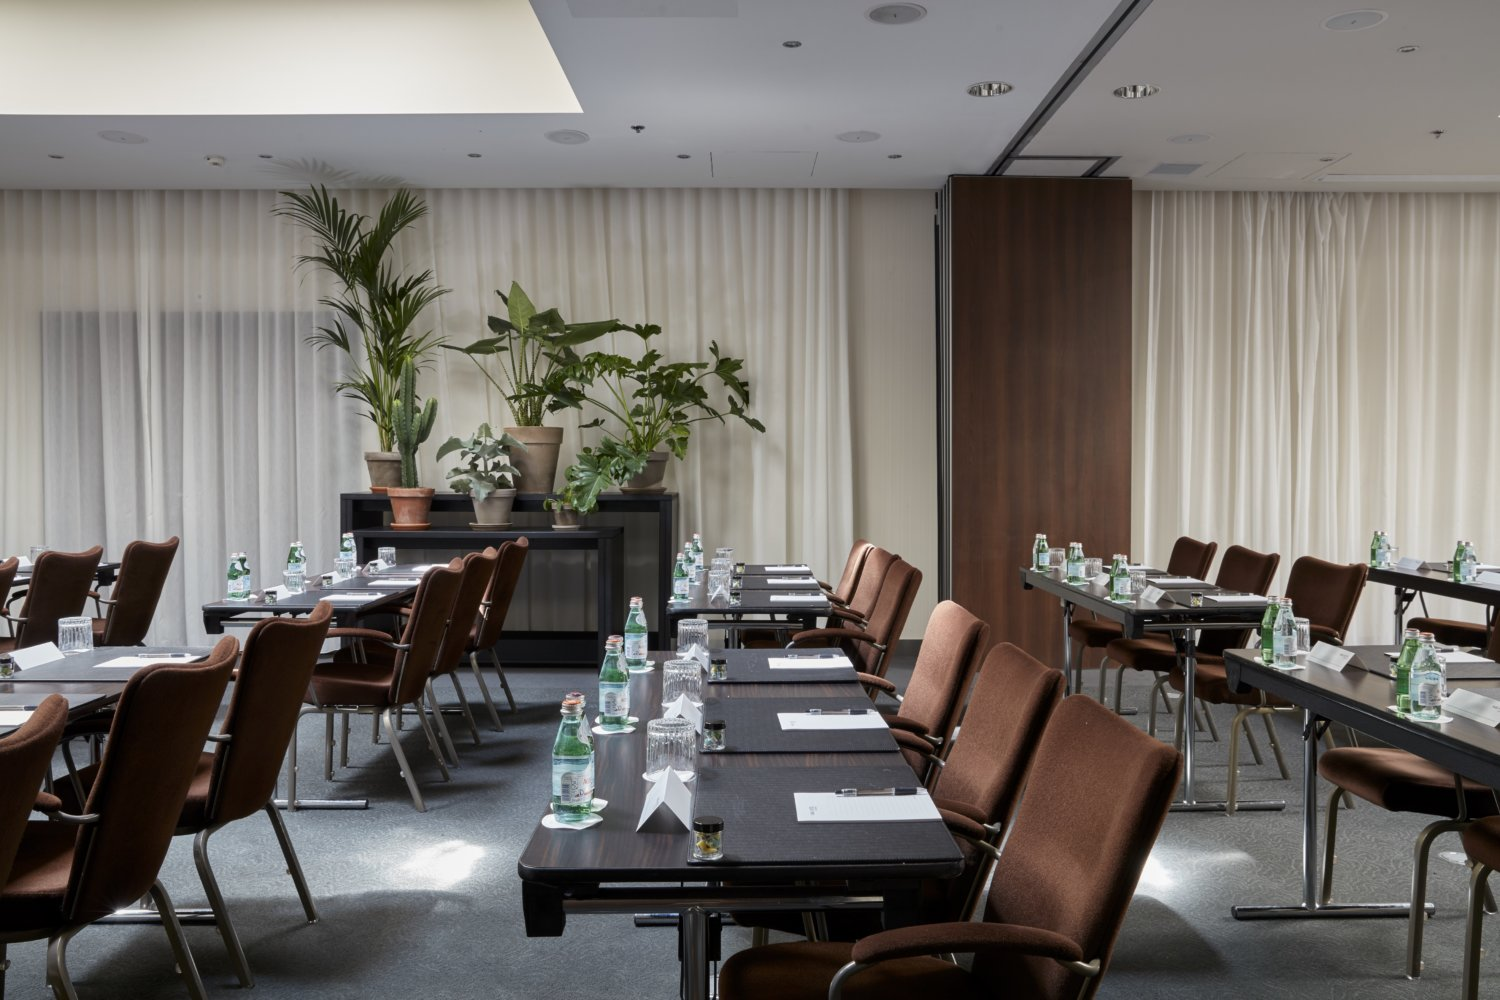 Park Hotel amsterdam New York meeting room meetings and events